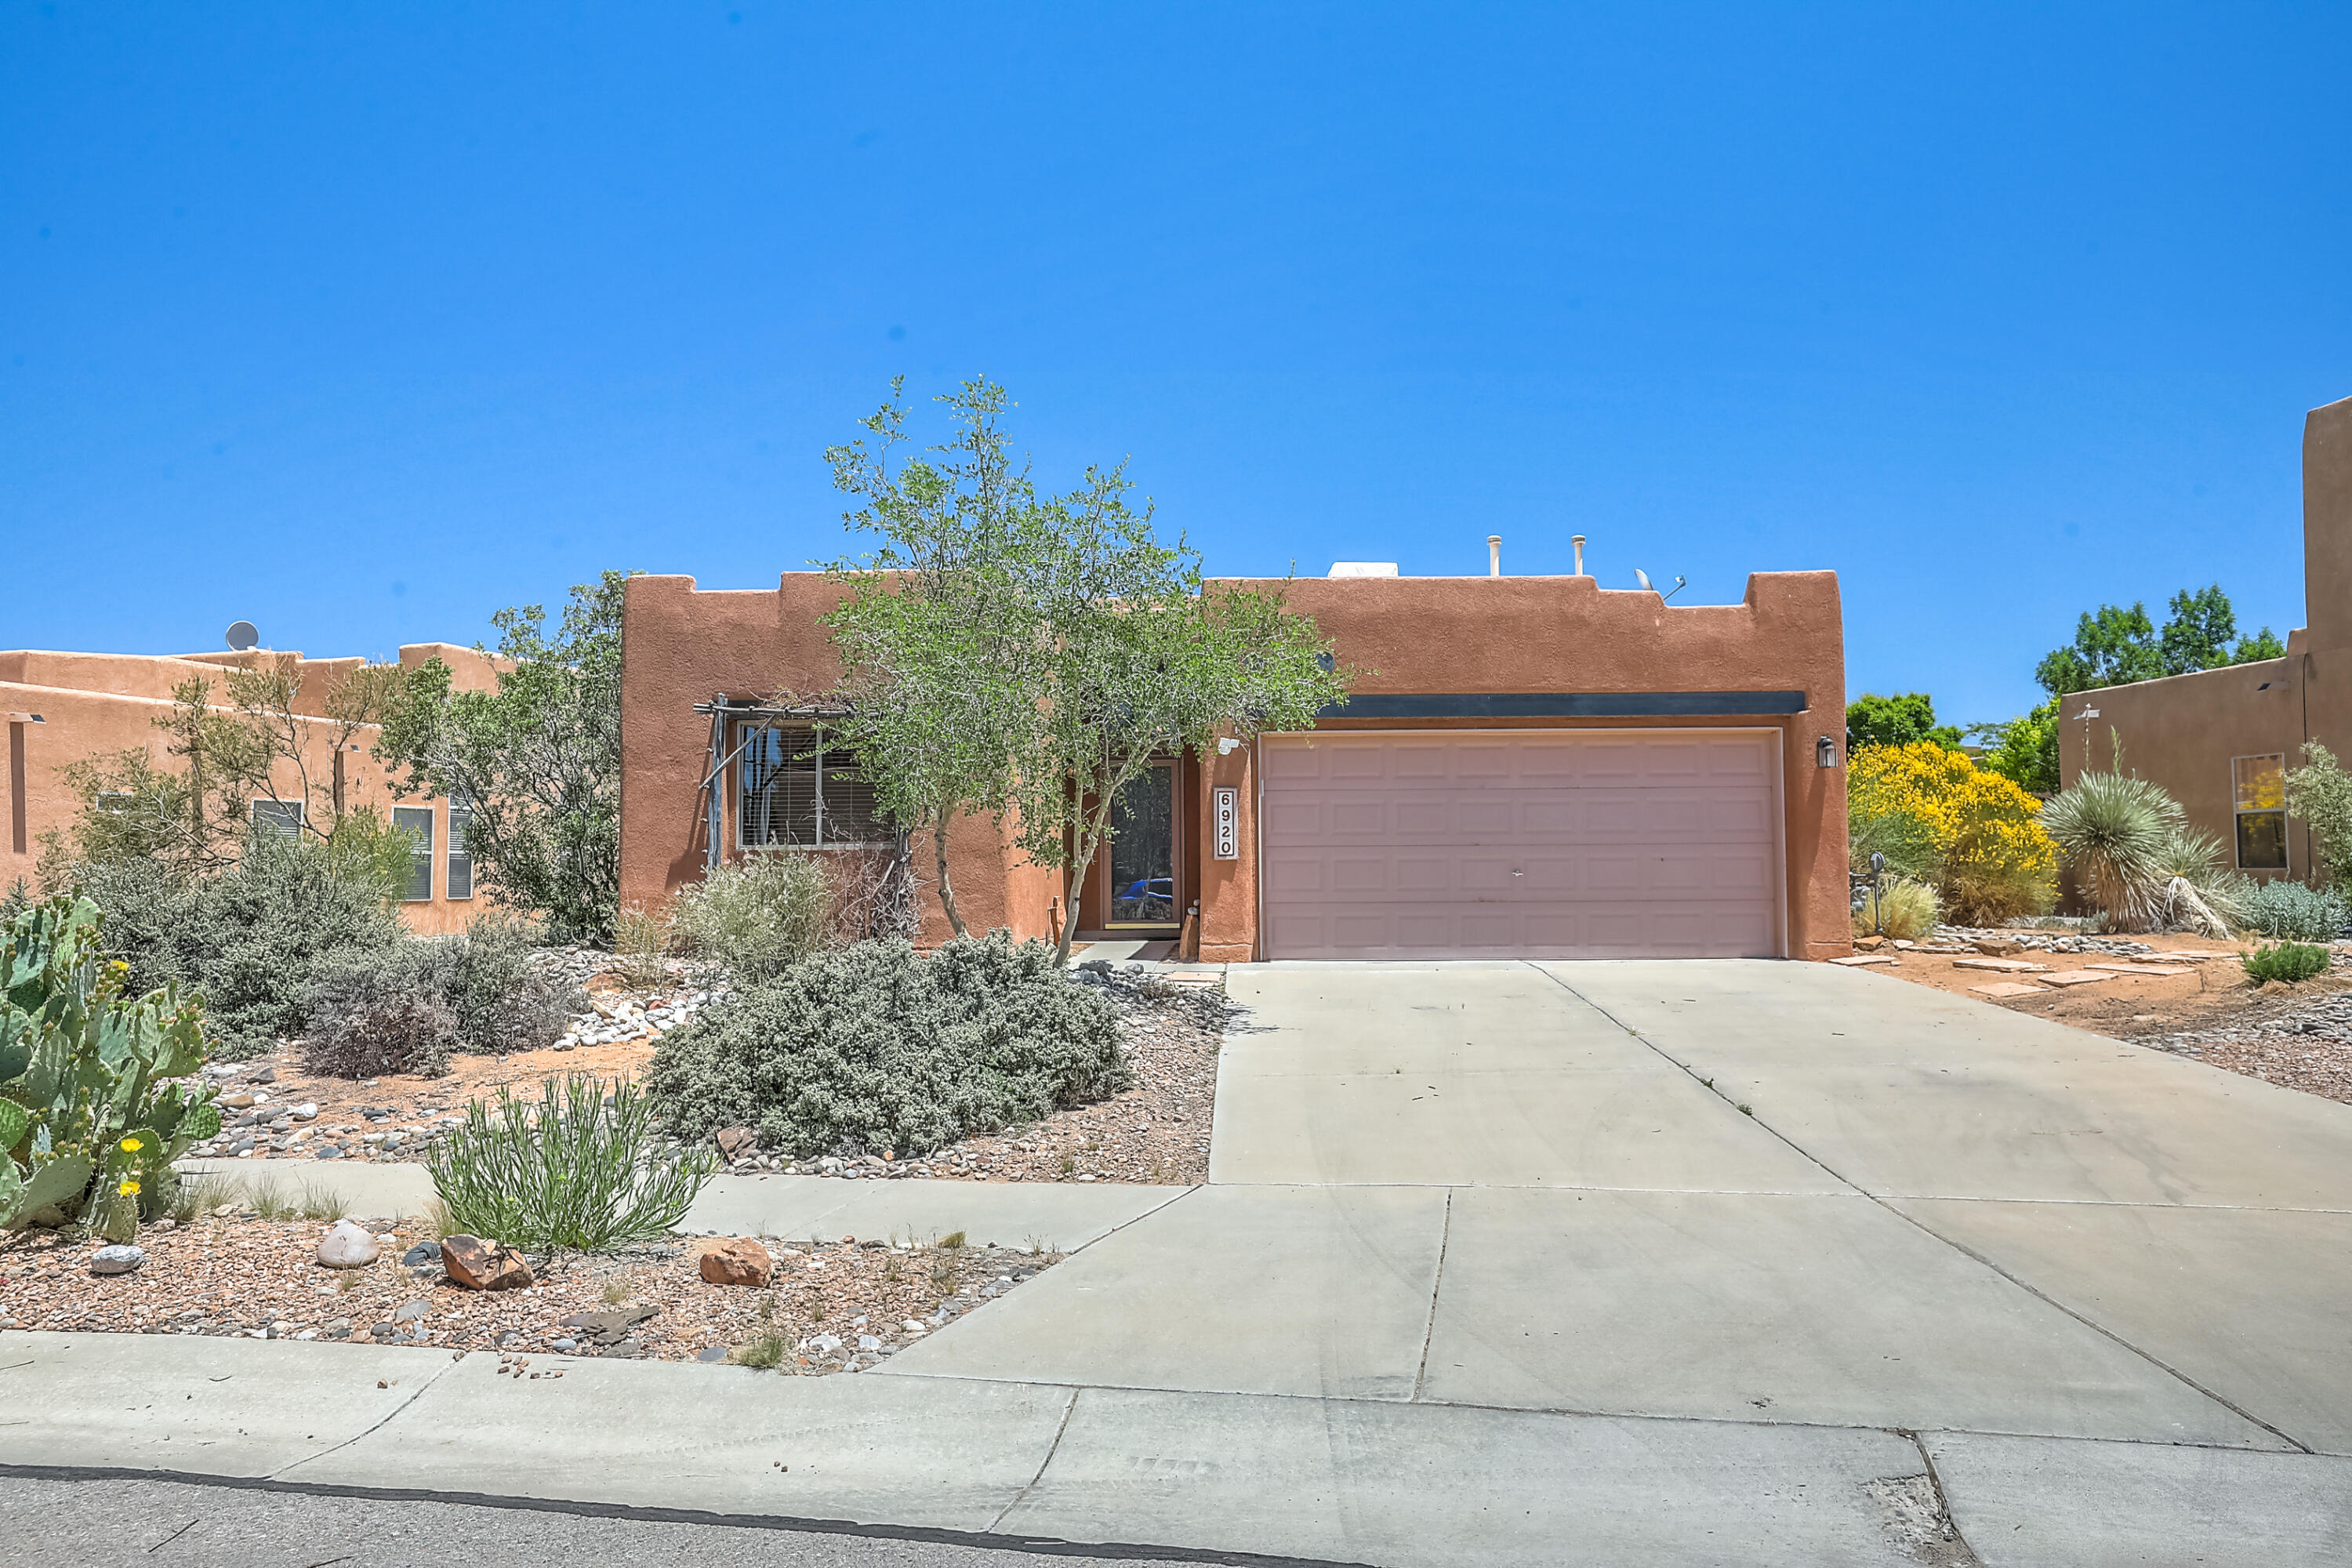 An absolute gem in the Vista Del Norte neighborhood featuring 3 bedrooms and 2 bathrooms with this versatile single-level floor plan. The spacious great room welcomes you with soaring ceilings and a custom gas log kiva fireplace. Enjoy the kitchen with custom cabinetry, SS stove, and dishwasher, accented by a sunny breakfast nook looking onto the patio and backyard. Step into the master suite with soaking tub, separate shower, double sinks, and walk-in closet with built-ins. Beautiful bamboo floors in the master bedroom and guest bedroom. The large and private backyard offers mature landscaping including a fig tree, pomegranate, and beautiful flowering shrubs and cacti throughout or take a short walk to enjoy the neighborhood park and playground. New roof installed 5/2021!